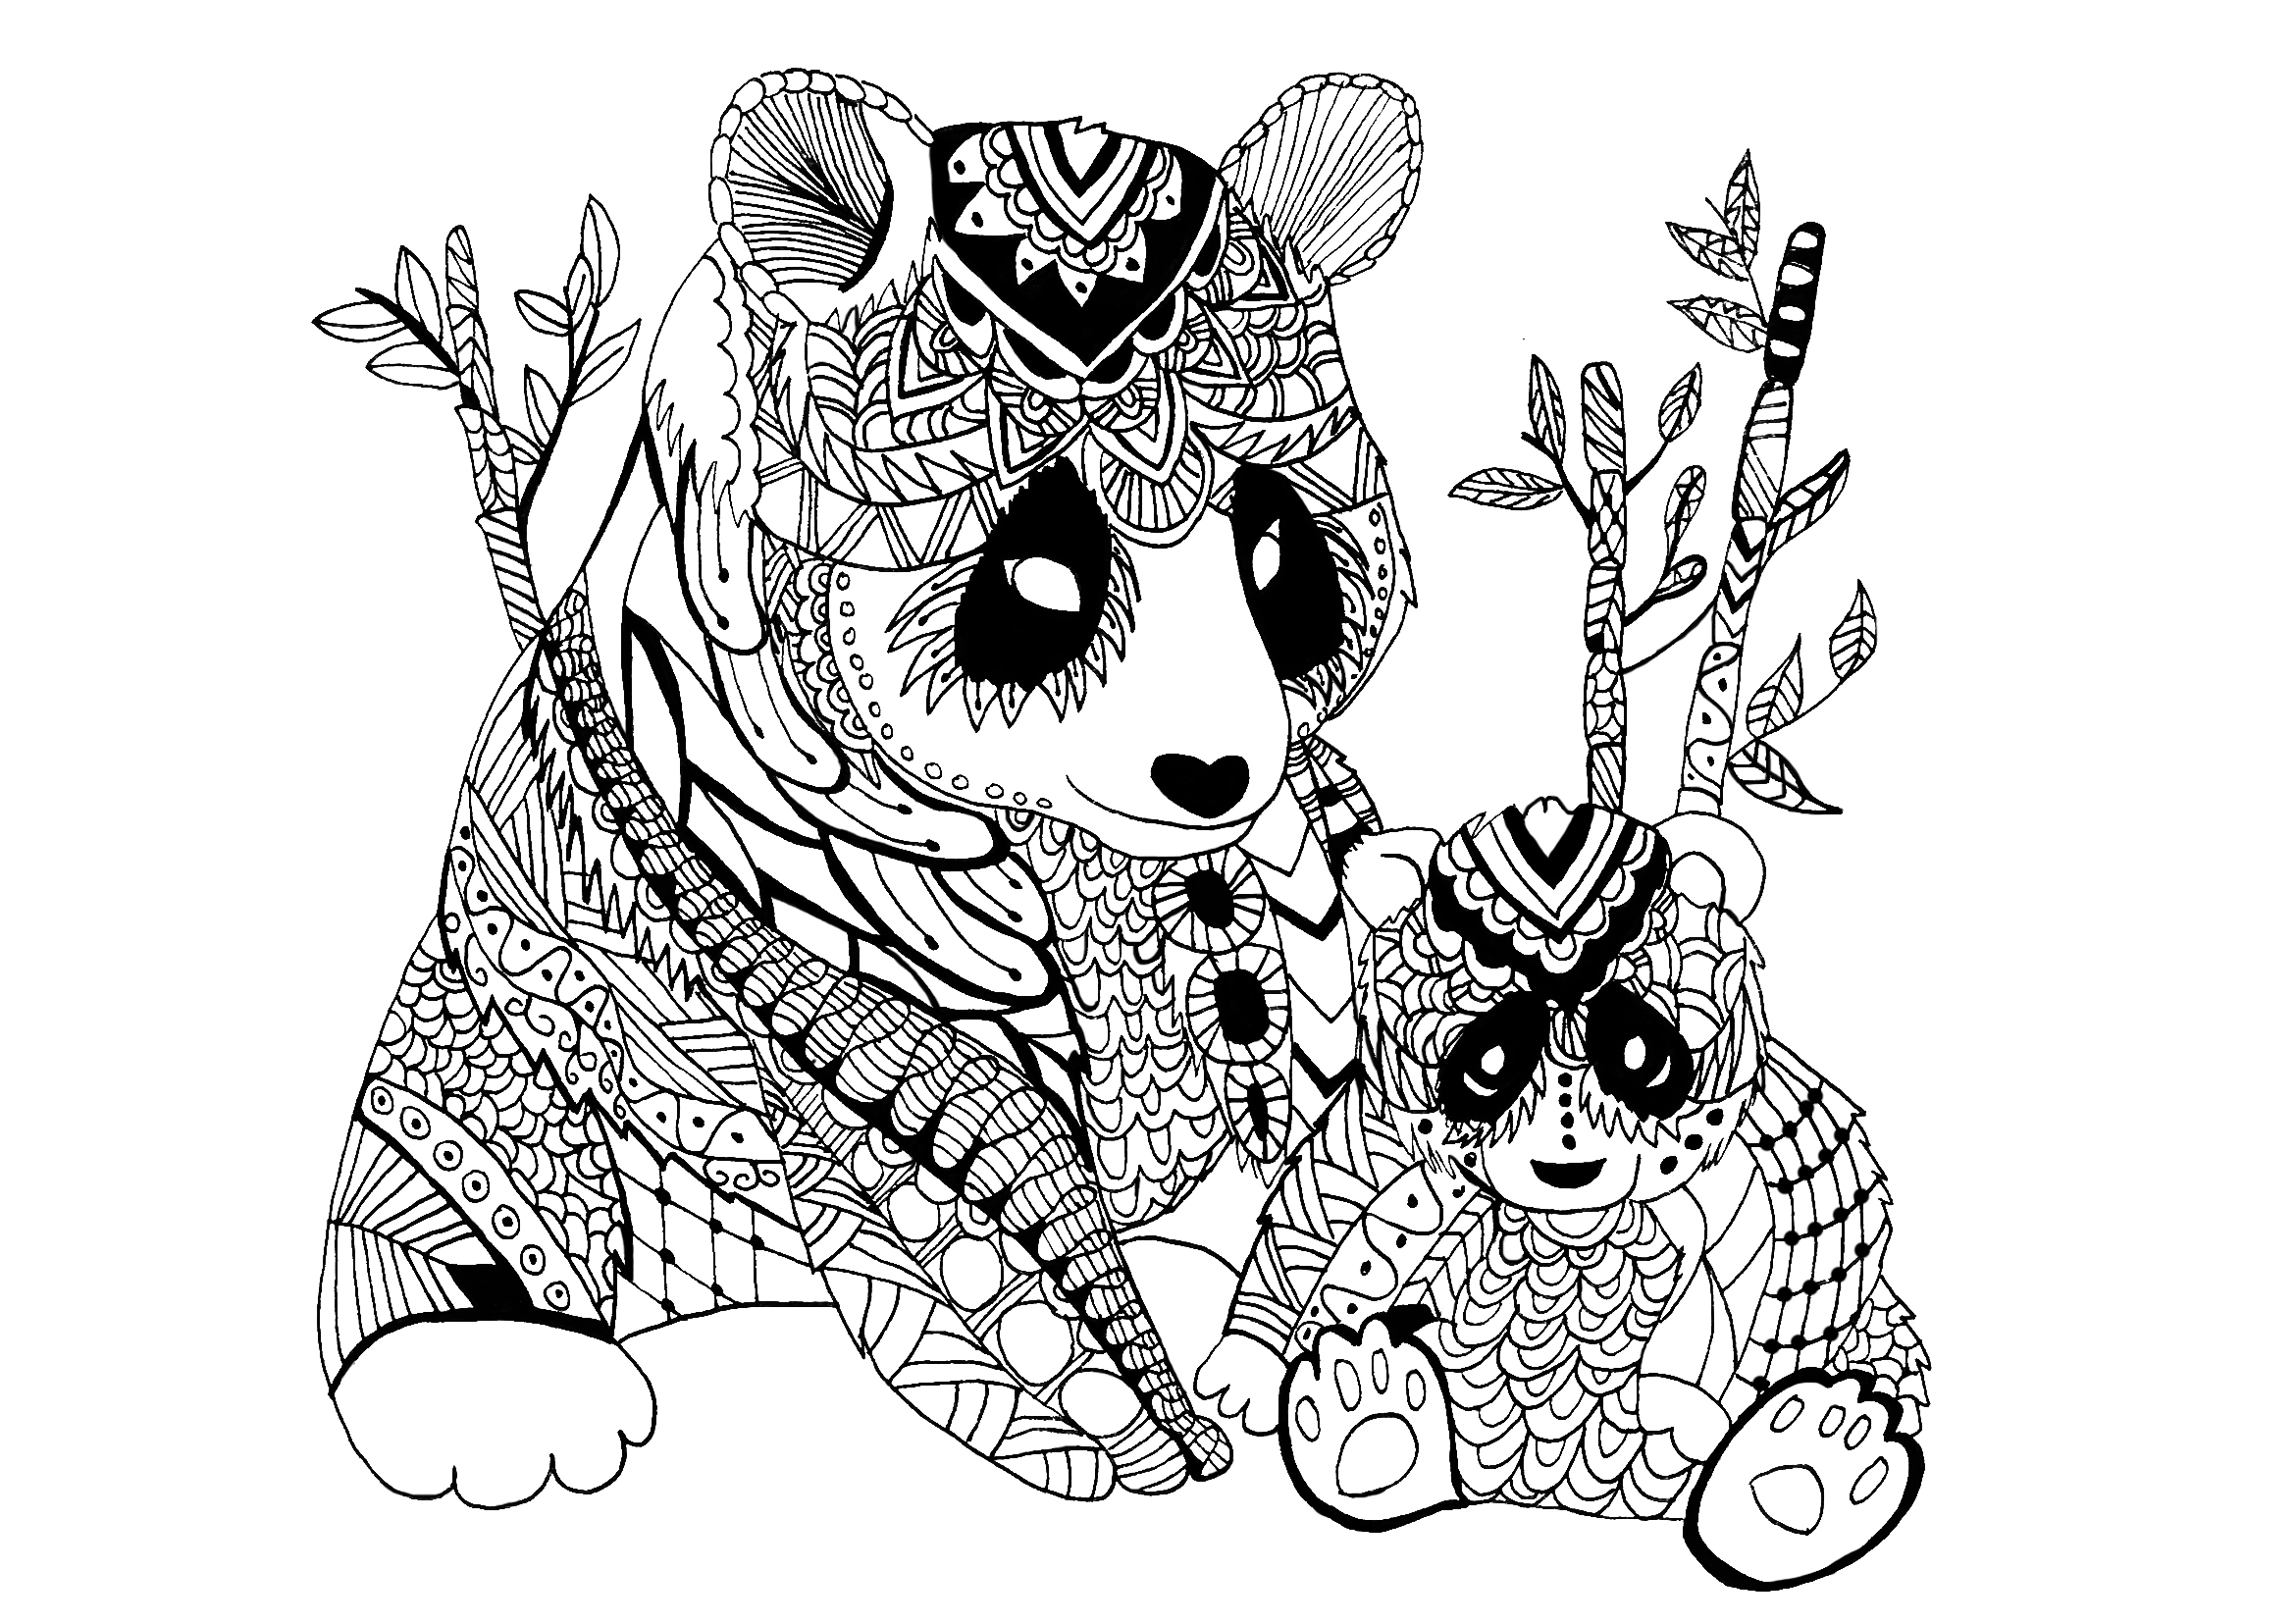 Panda Zentangle Celine Zentangle Coloring Pages For Adults Coloring Pages For Adults